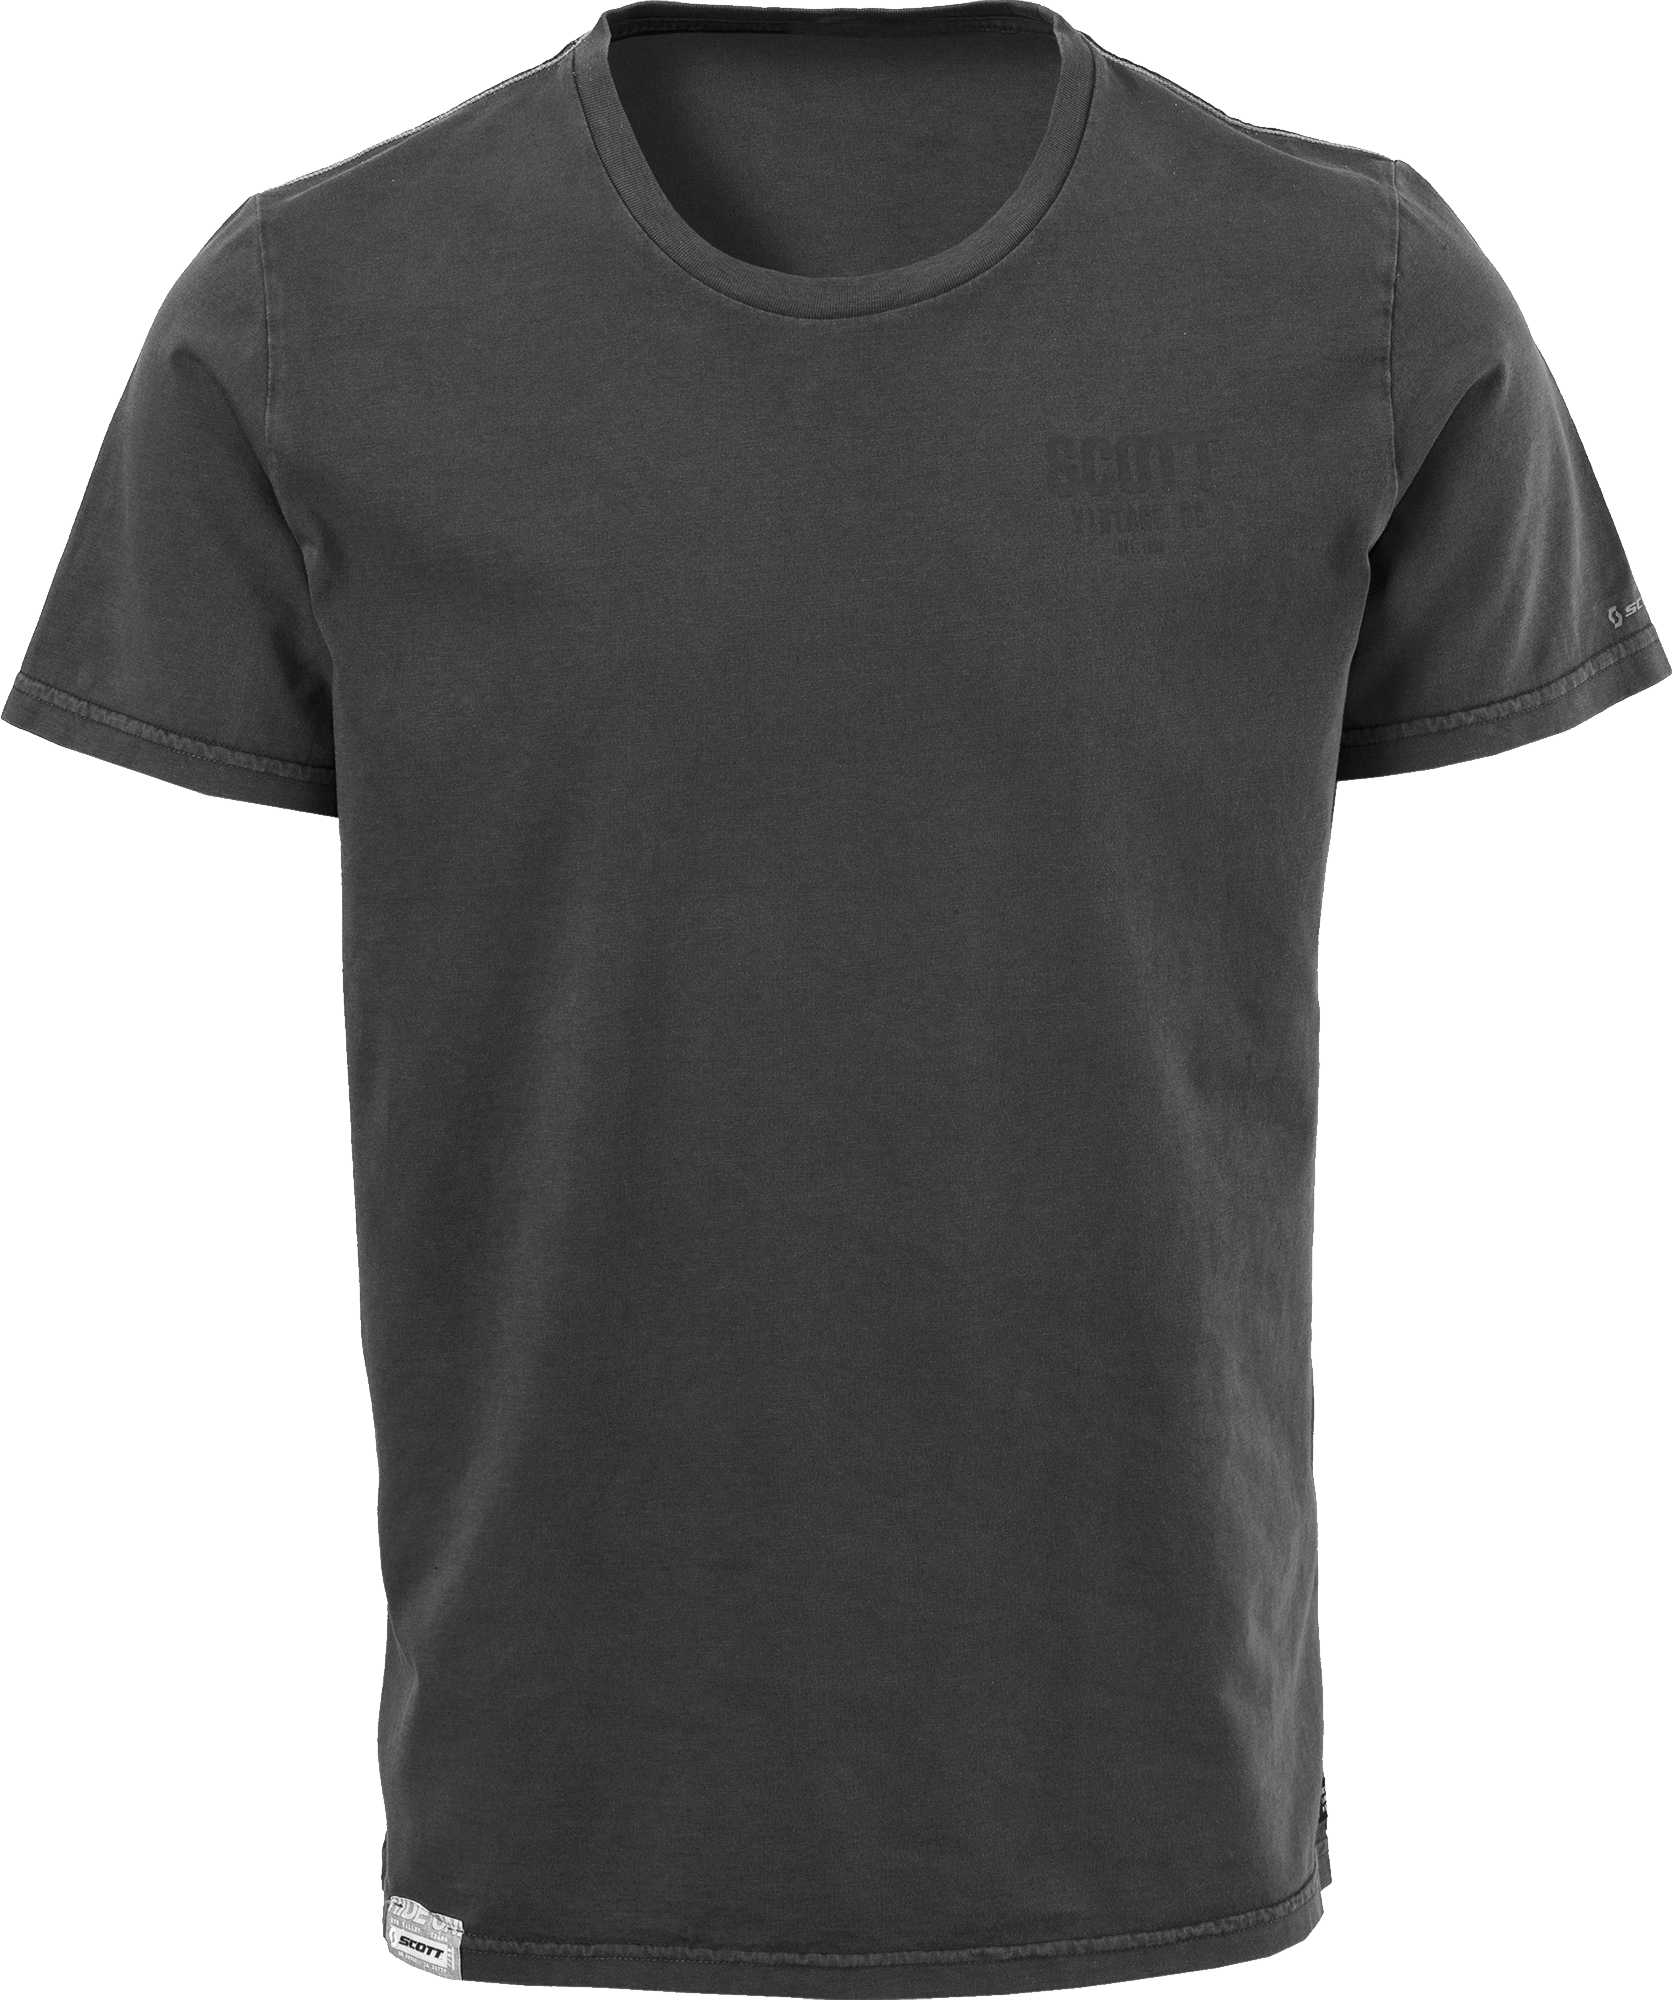 Grey shirt png. Images free download polo